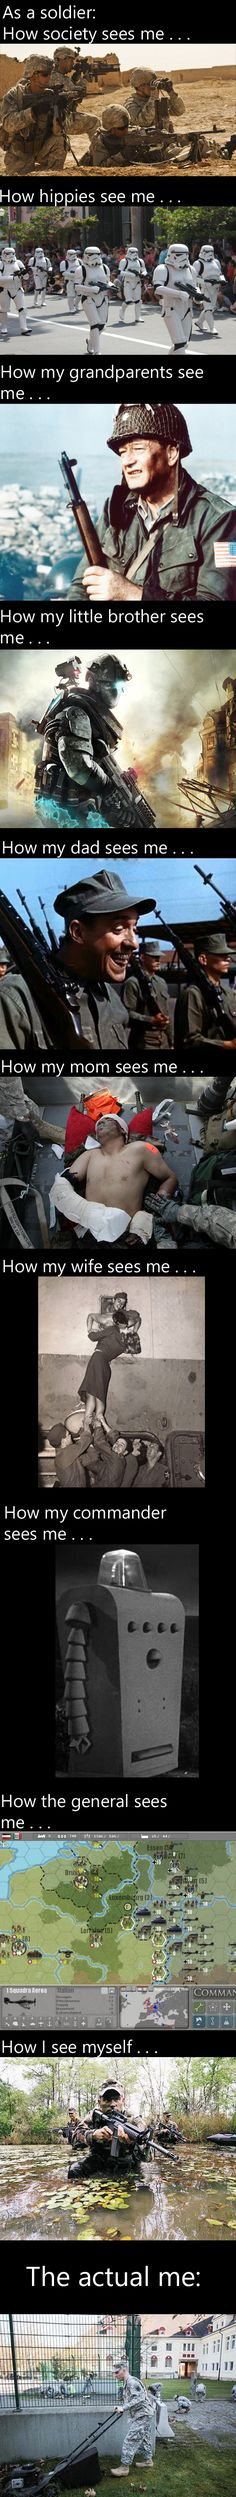 Being a soldier . . .GOD SEES YOU, SOLDIER, AND HE IS WATCHING OVER YOU AND YOUR FAMILY!!! THANK YOU FOR FIGHTING FOR OUR COUNTRY, I AM VERY GRATEFUL YOU CAN!!! GO WITH GOD, HES RIGHT BESIDE YOU, AND YOU BROTHERS!!!!